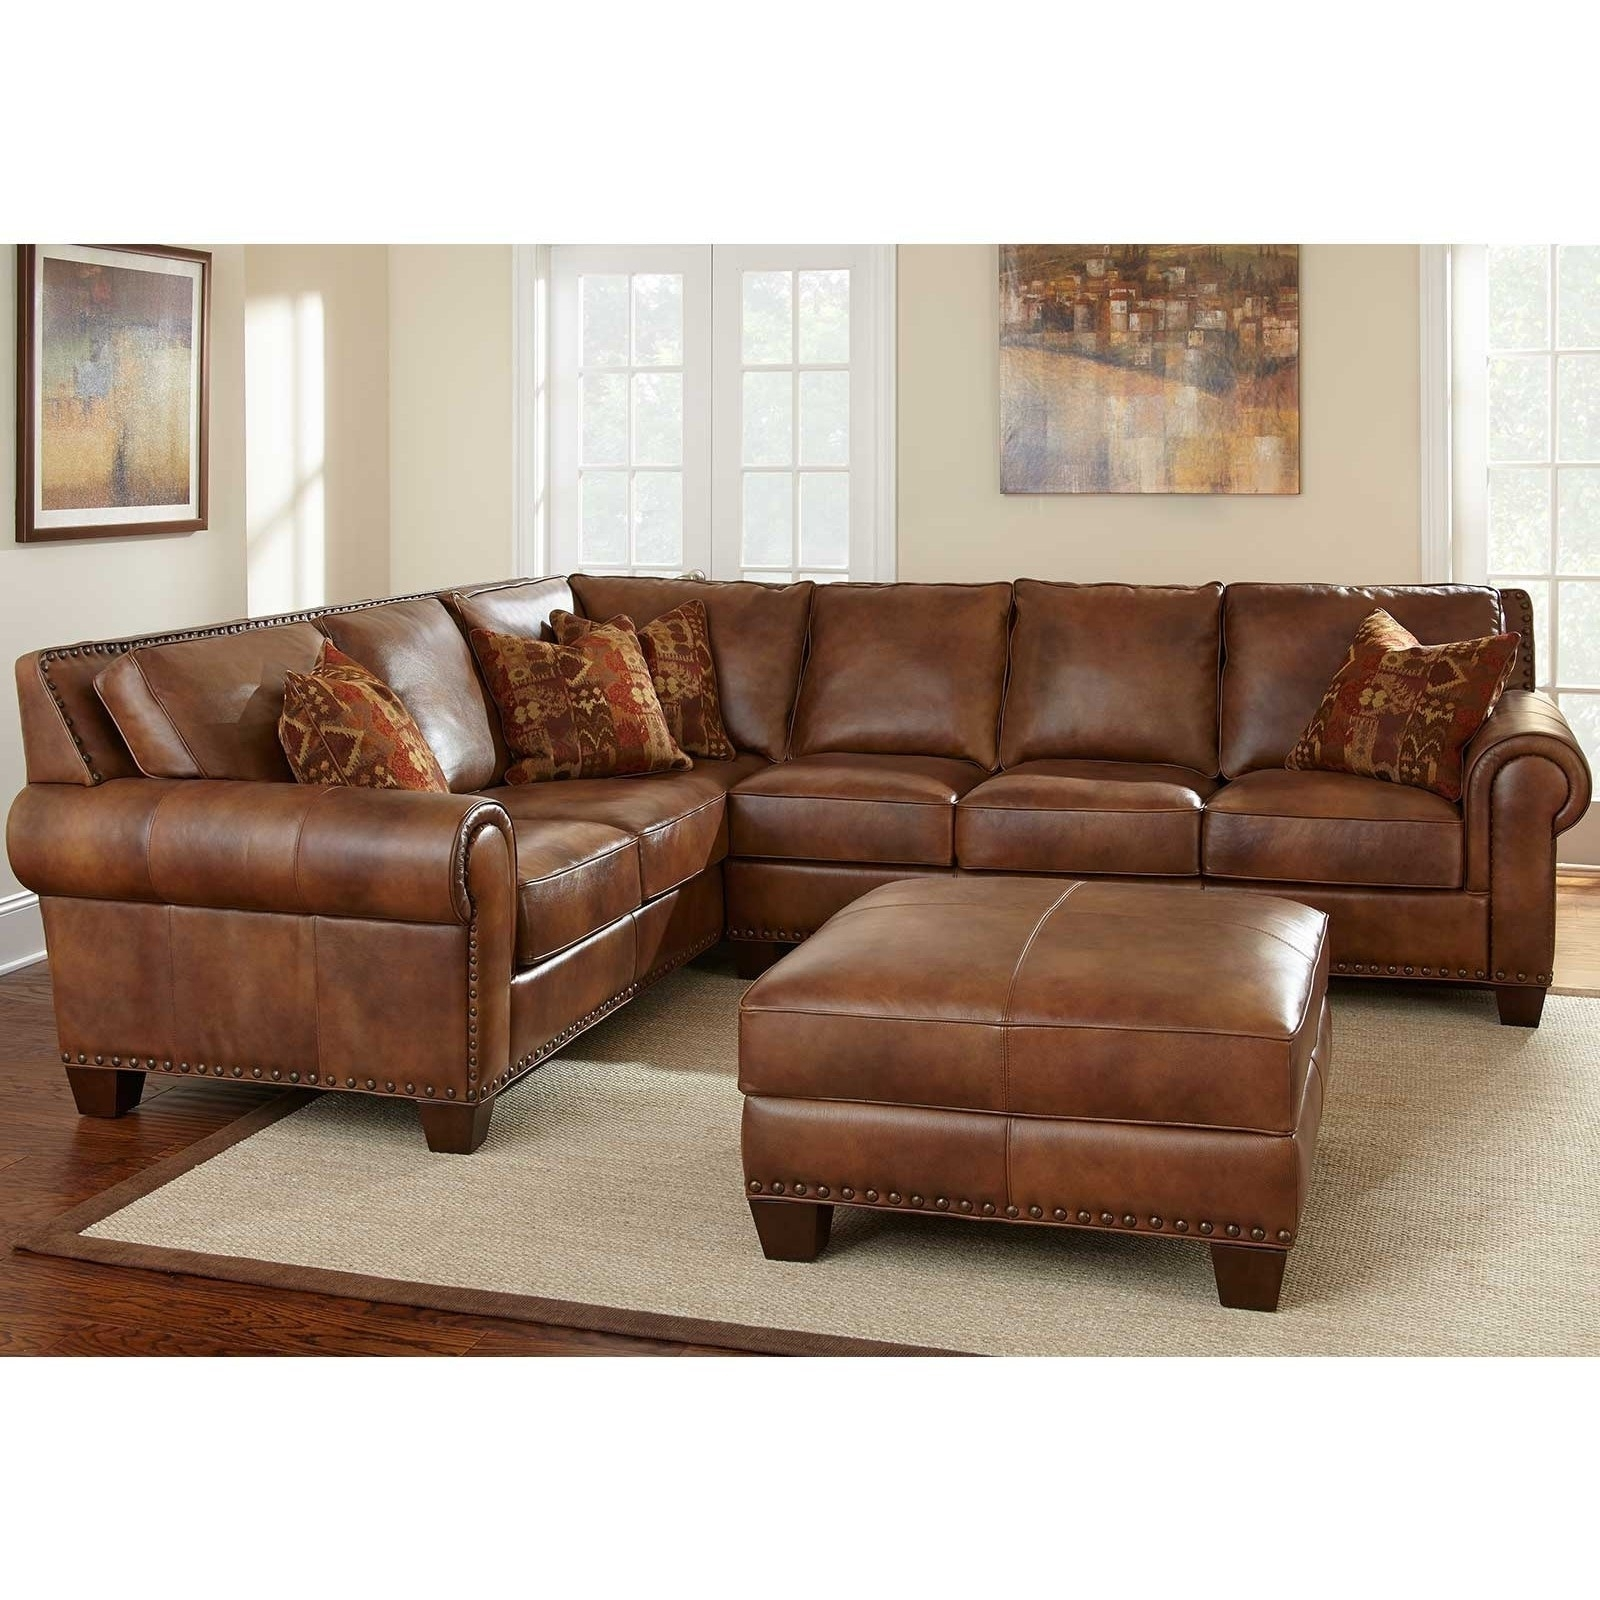 Popular Sectional Sofa Sales – Hotelsbacau Pertaining To Sectional Sofas In North Carolina (View 14 of 15)